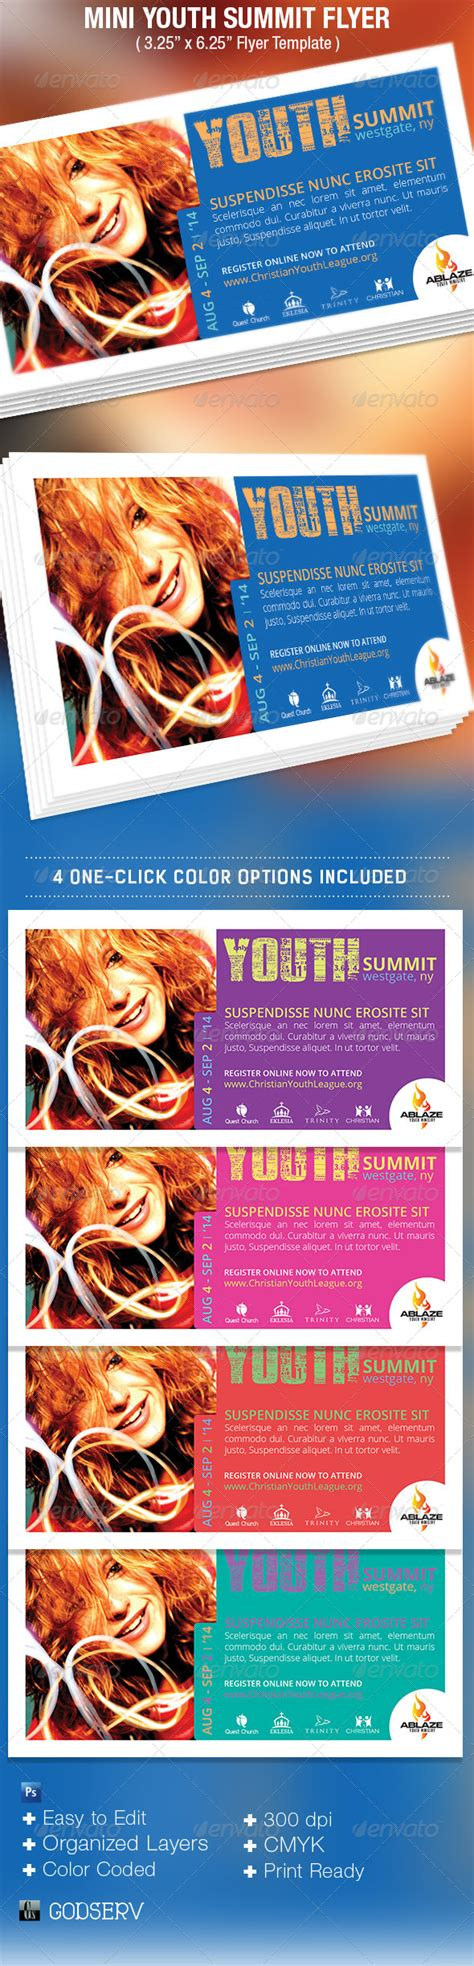 Sle Youth Revival Flyers 187 Tinkytyler Org Stock Photos Graphics Youth Flyer Templates